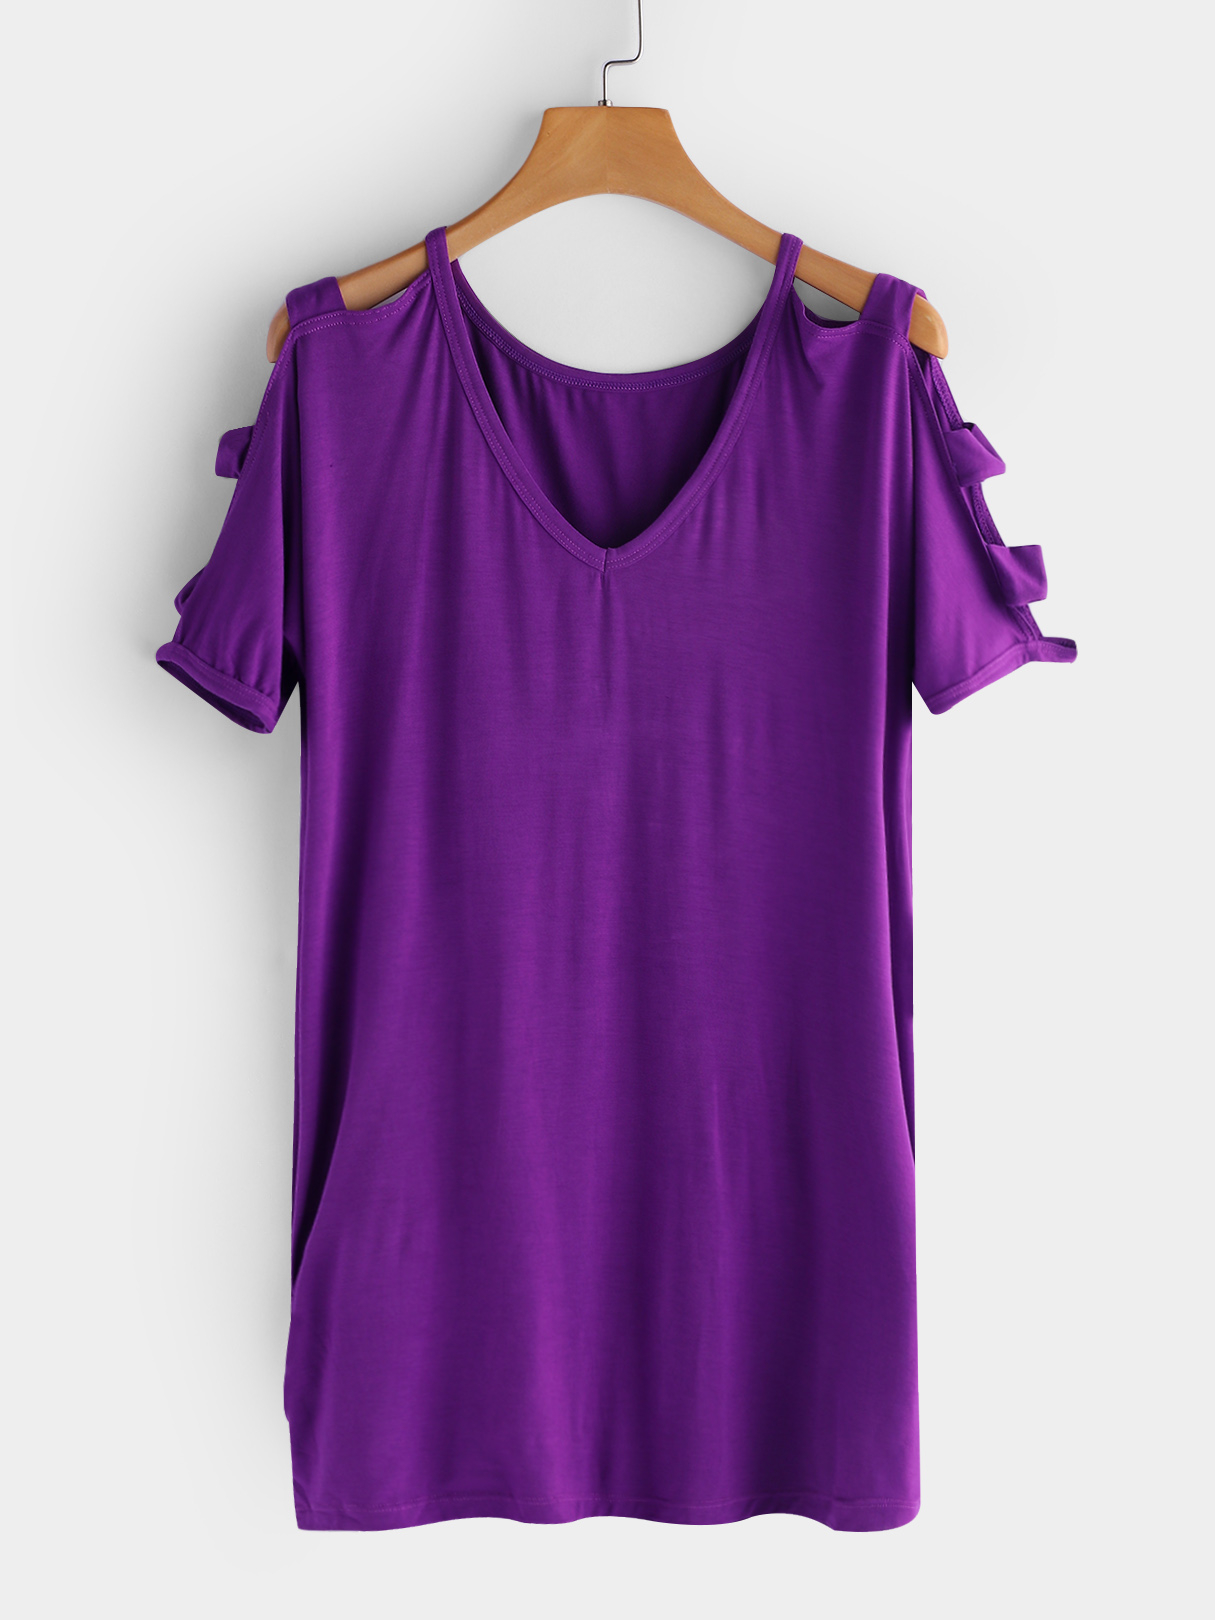 Purple Cut Out Design Plain Cold Shoulder V-neck Short Sleeves T-shirts plain gray v neck t shirts